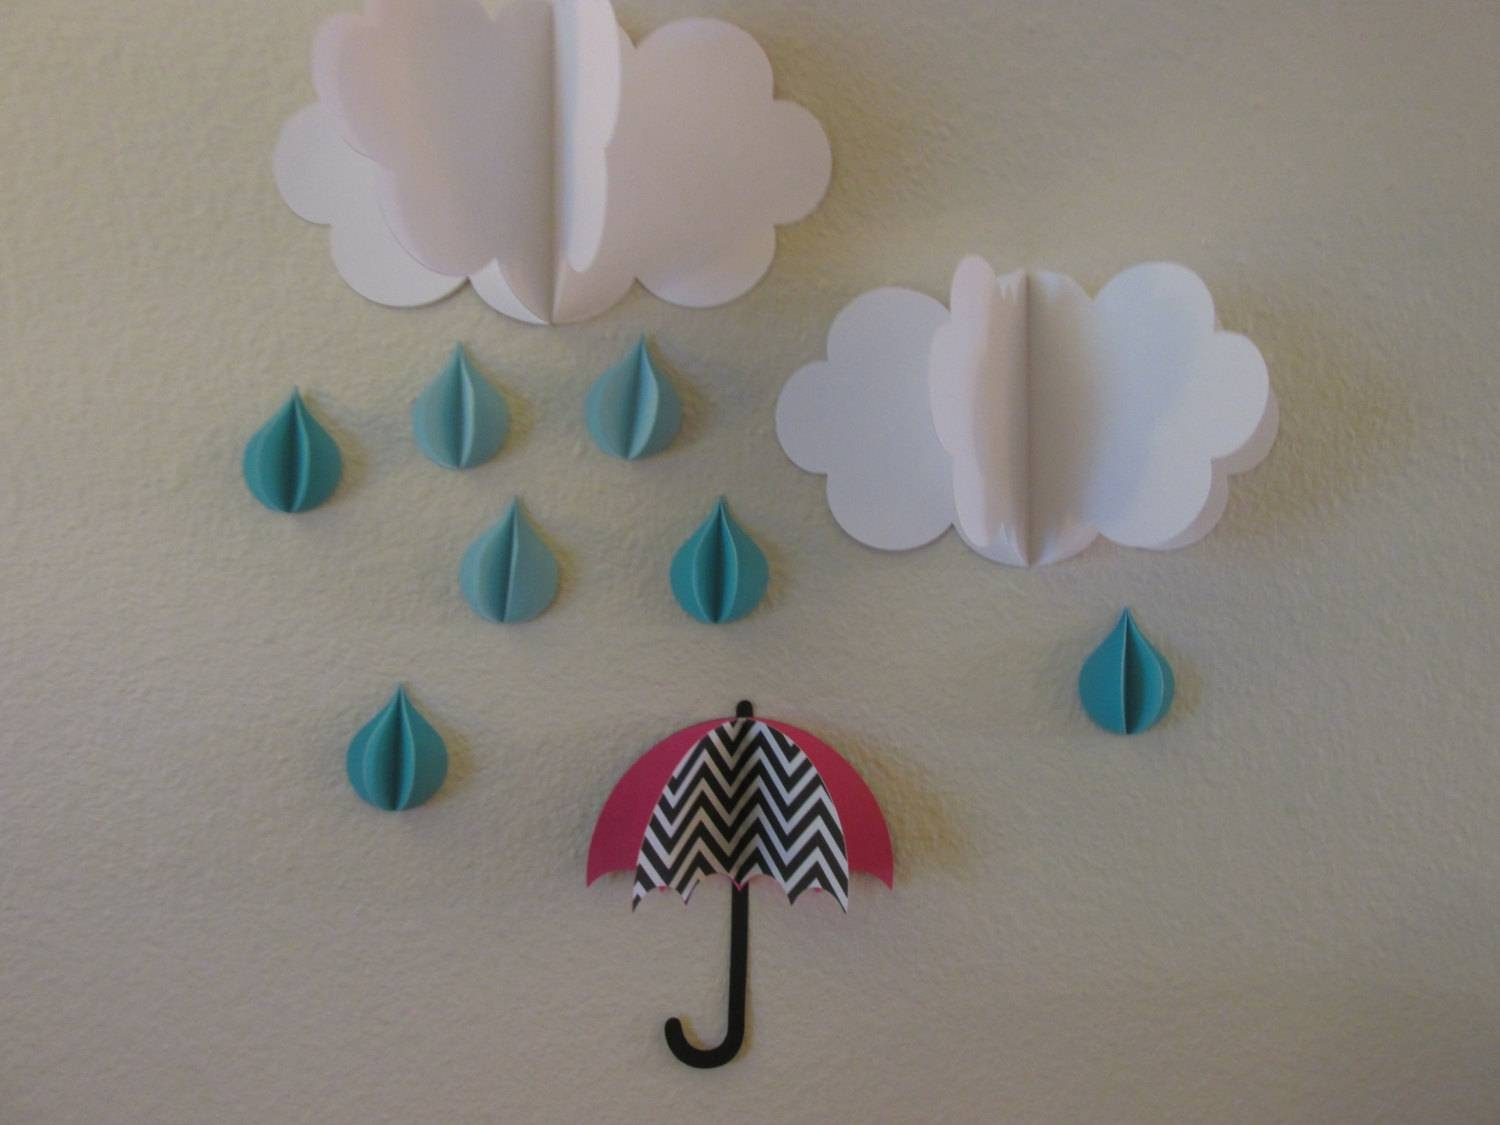 3D Wall Art 3D Baby Room Decoration Wall Art 3D Clouds Pertaining To Latest 3D Wall Art Etsy (View 4 of 20)